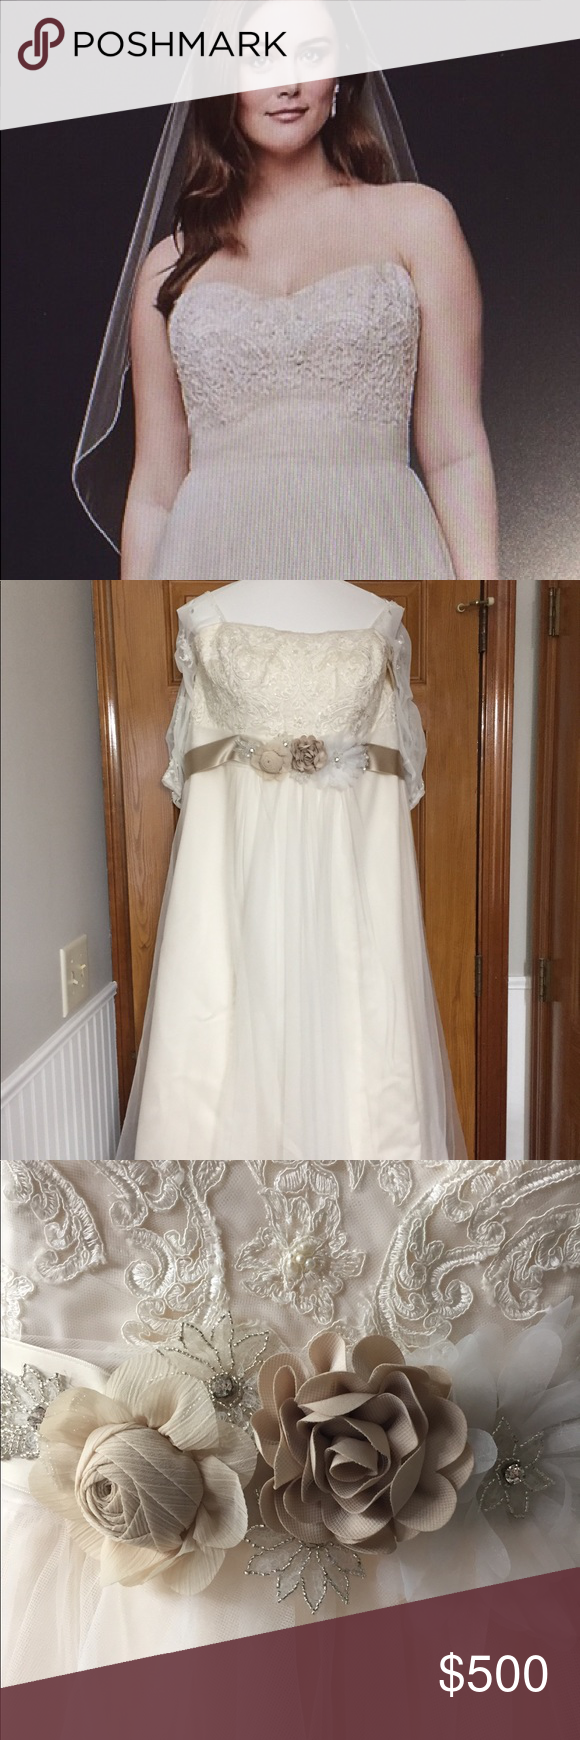 Bridal gown ivorychampagne with sleeves nwt in my posh